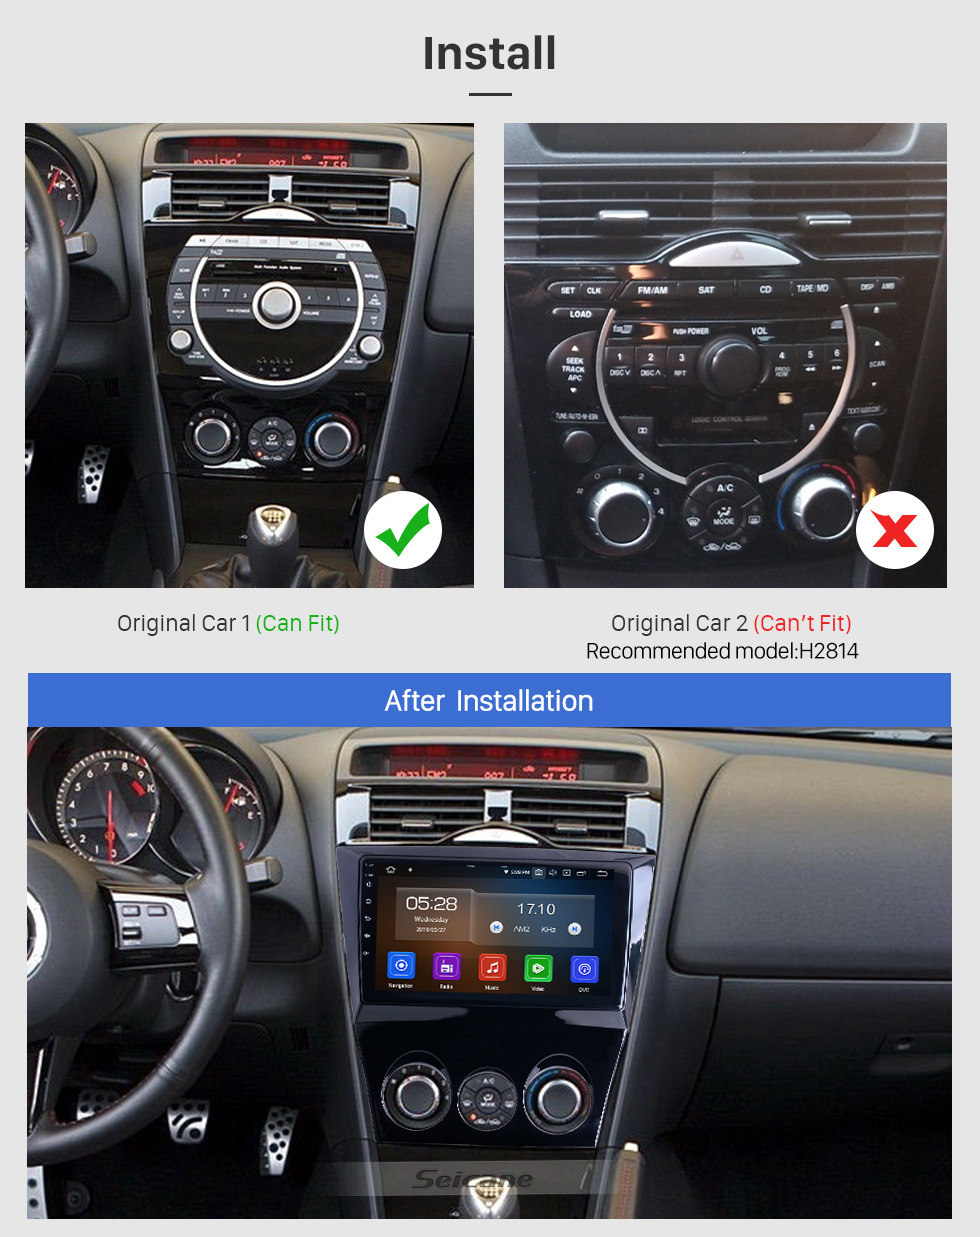 Seicane OEM 9 inch Android 10.0 for 2011 Mazda RX8 Radio with Bluetooth WIFI HD Touchscreen GPS Navigation System Carplay support DVR